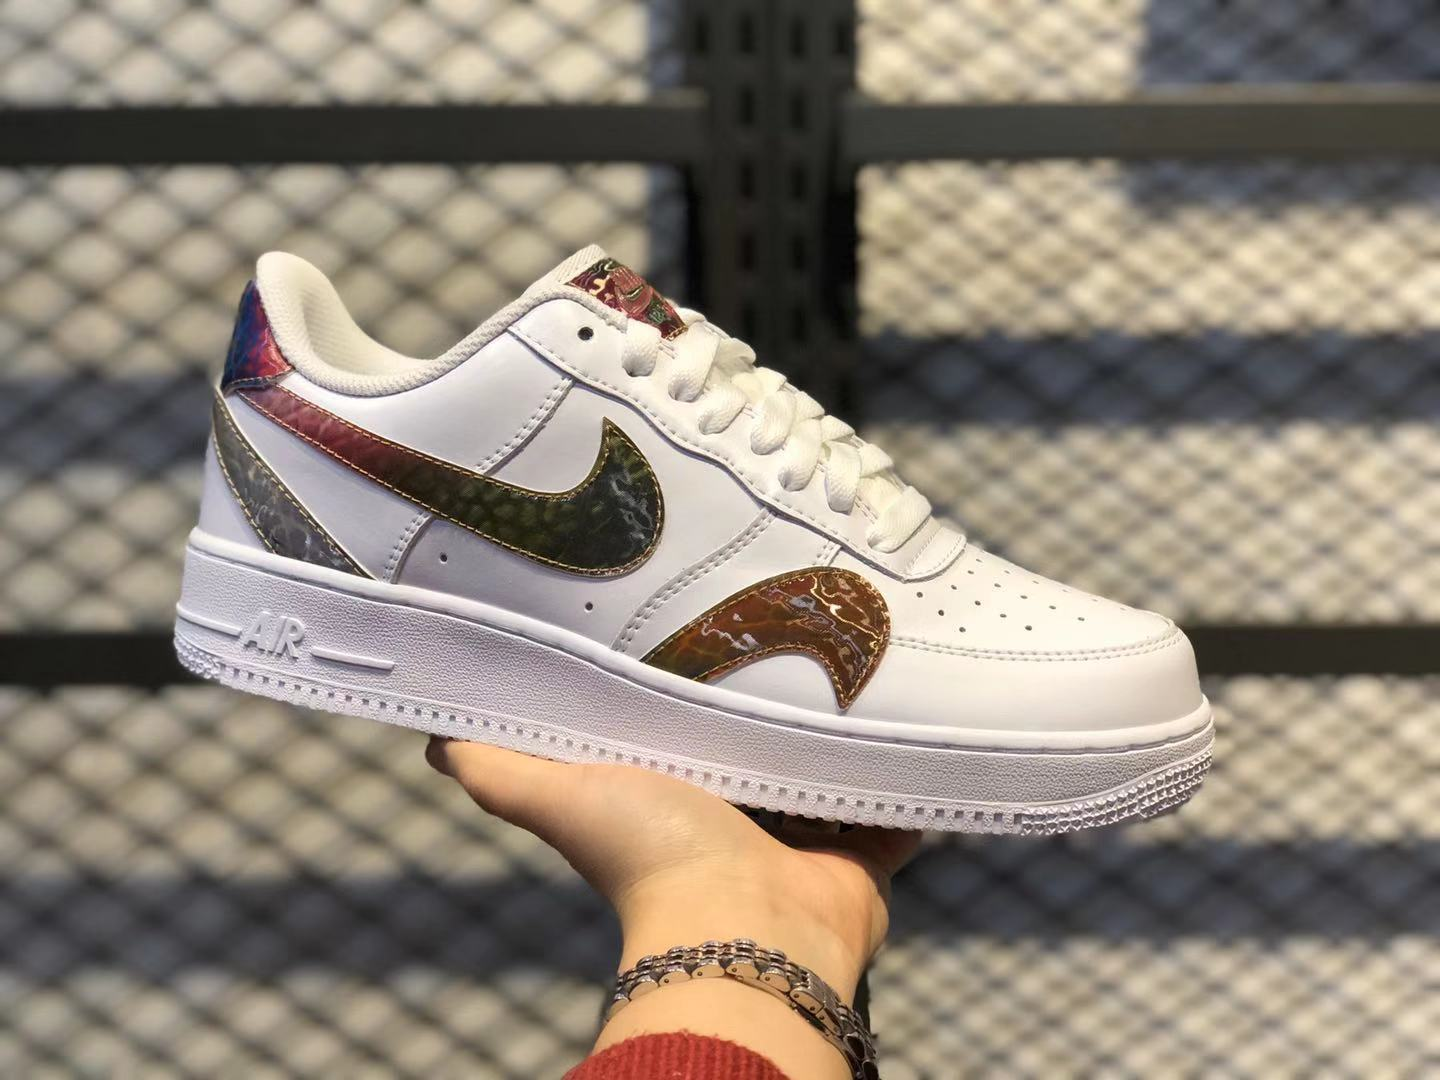 2020 Nike Air Force 1'07 White/Reflective Silver Sneakers For Sale CK7214-101